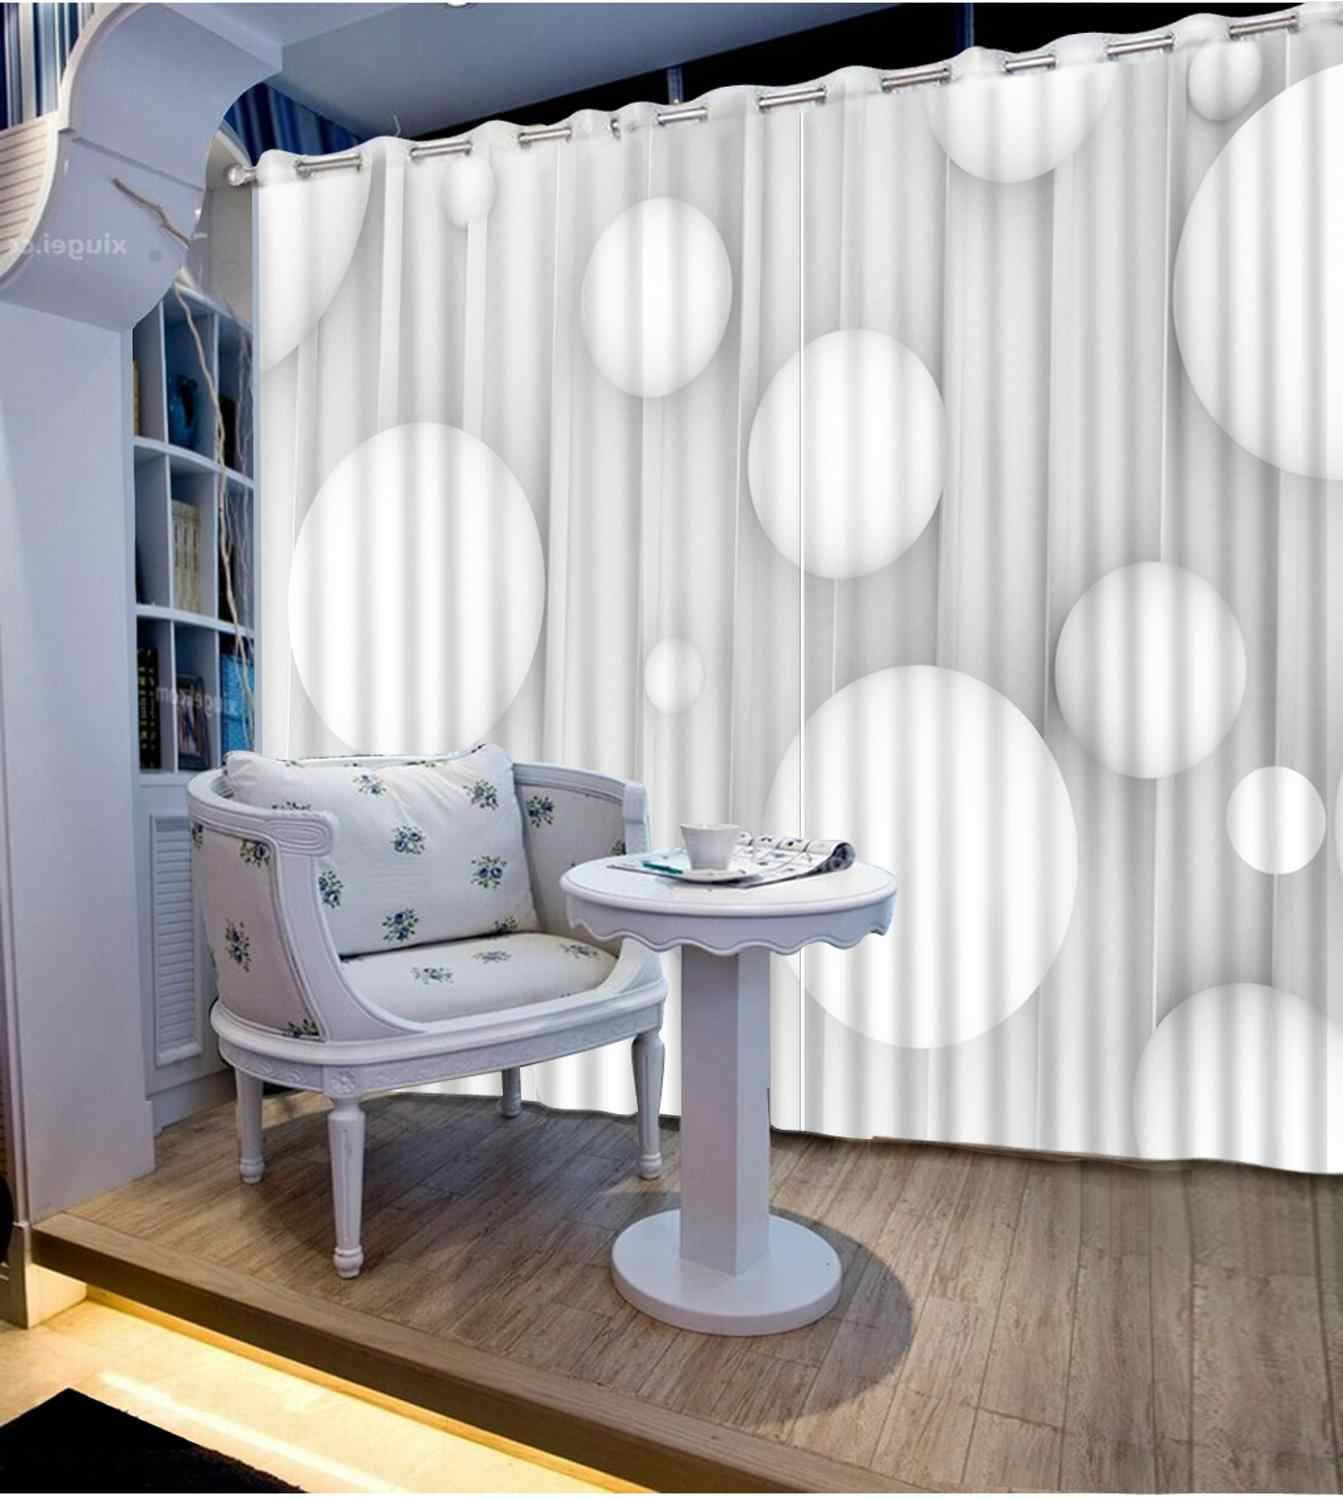 3d curtains window curtains for living room Creative stereo ball Height Modern Curtains